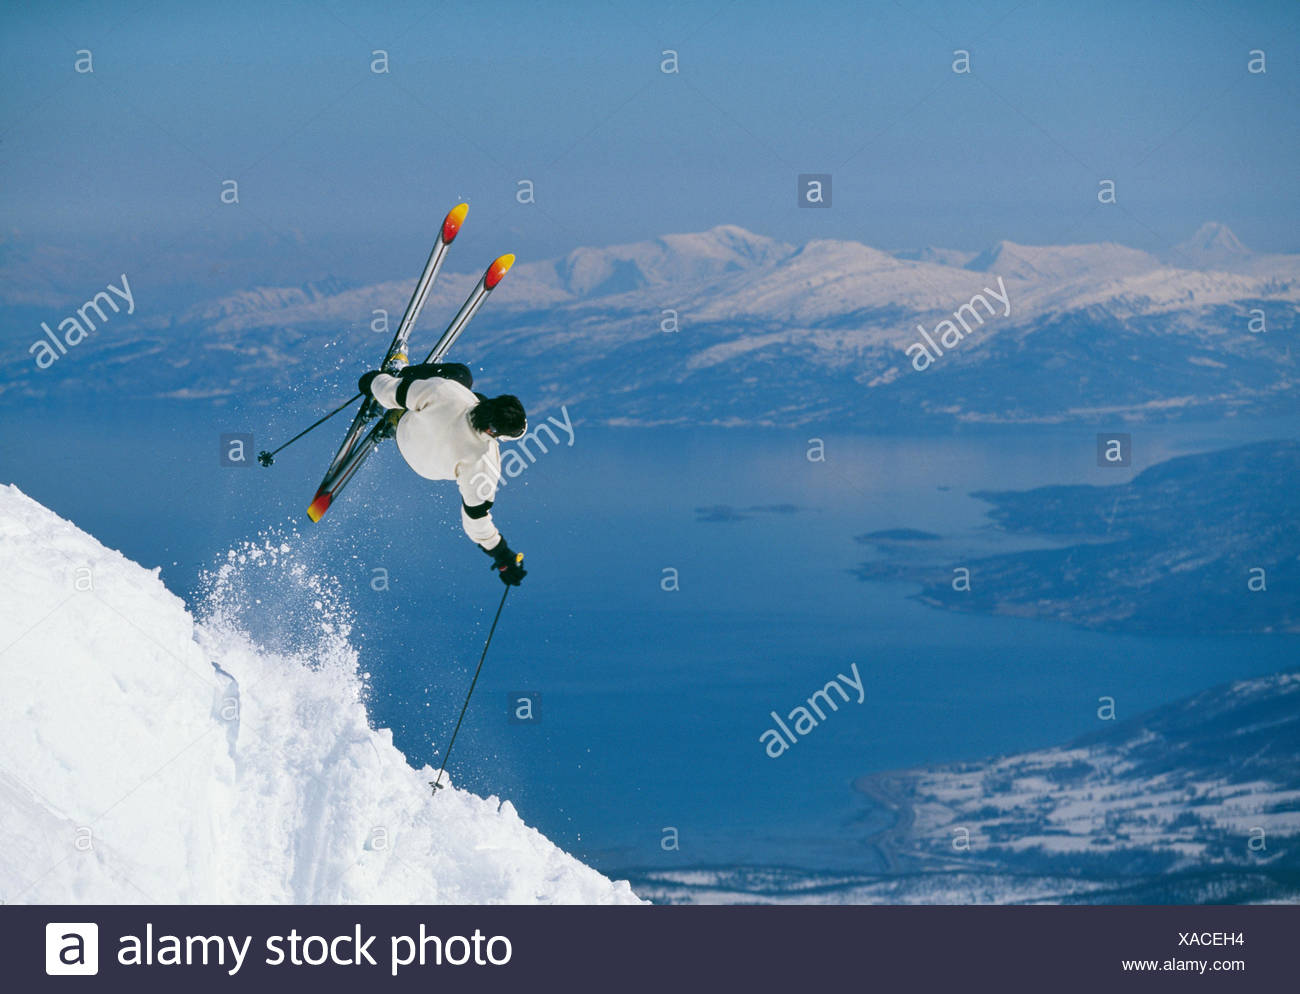 Skier in the middle of a jump, Narvik, Norway. - Stock Image